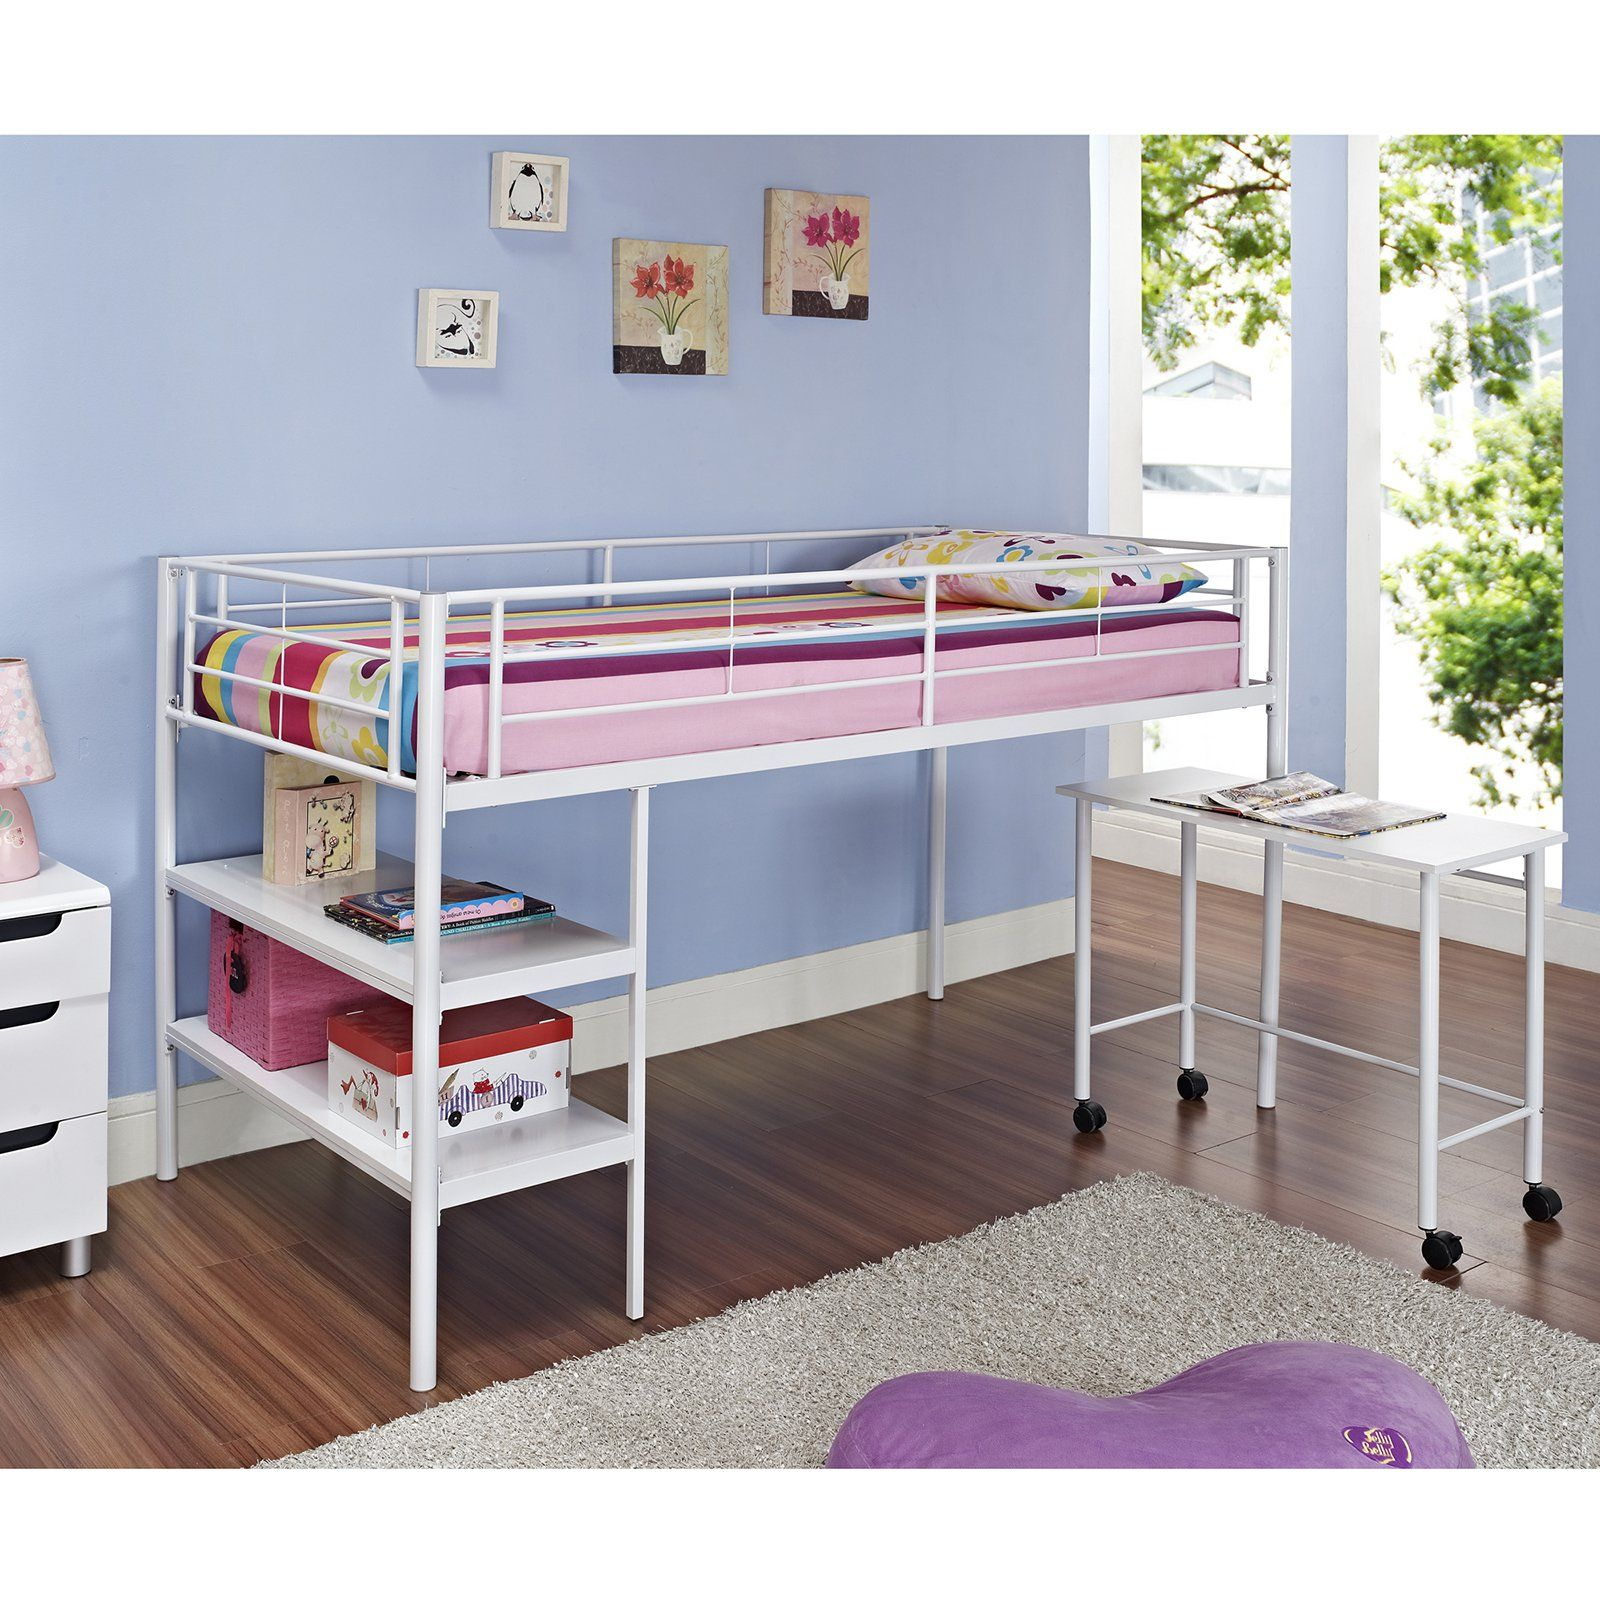 Wooden loft bed with desk  White Twin Loft Bed with Desk and Shelves  HNTLDSPWH  Products